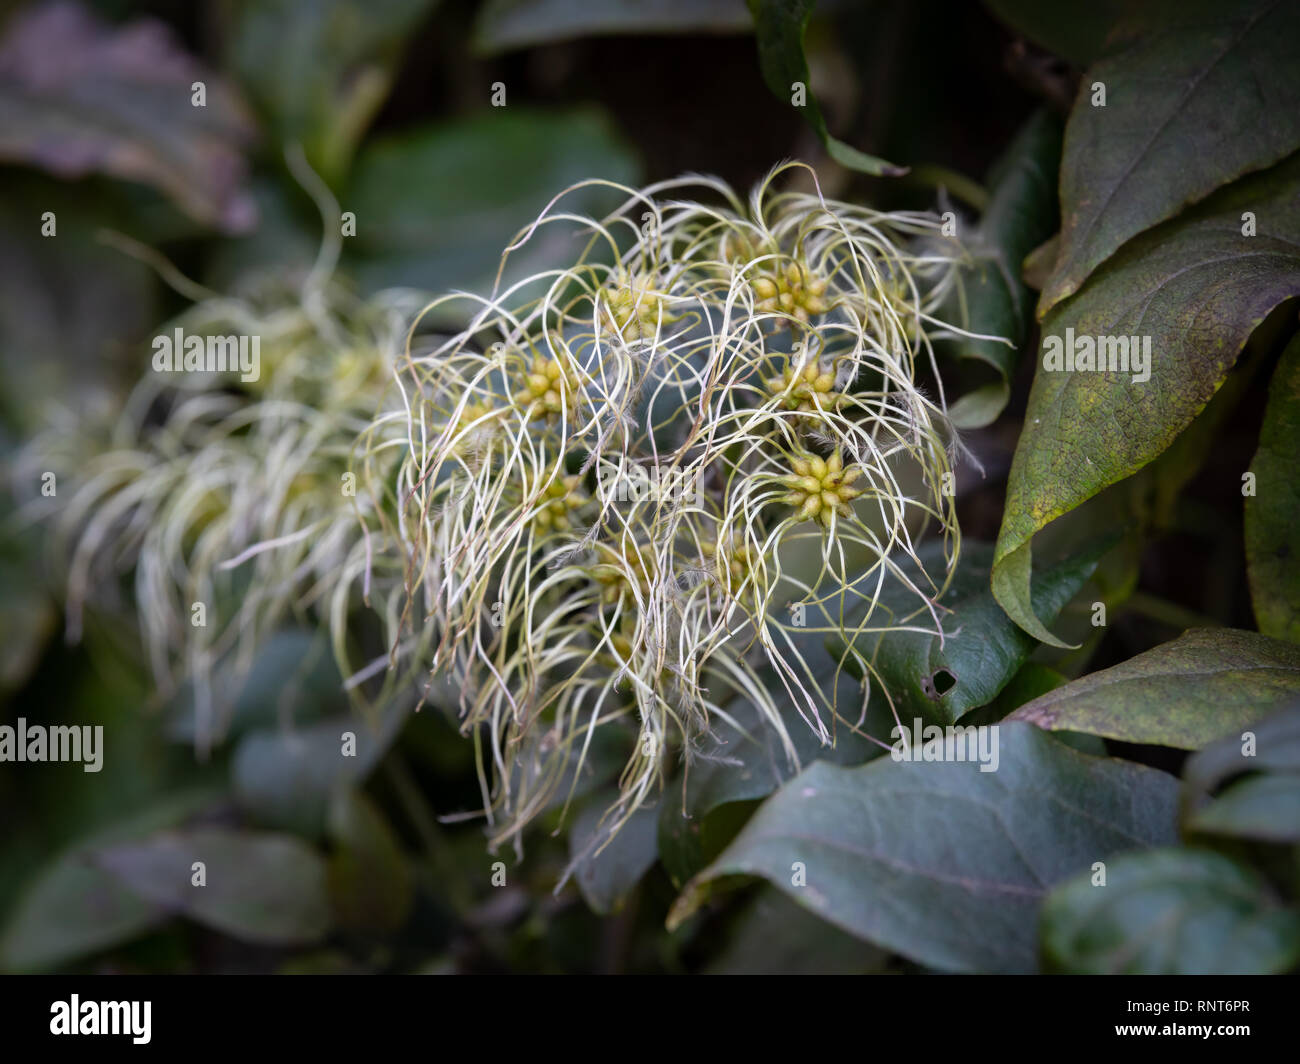 Fruits of an old man's beard plant (Clematis vitalba) in autumn - Stock Image